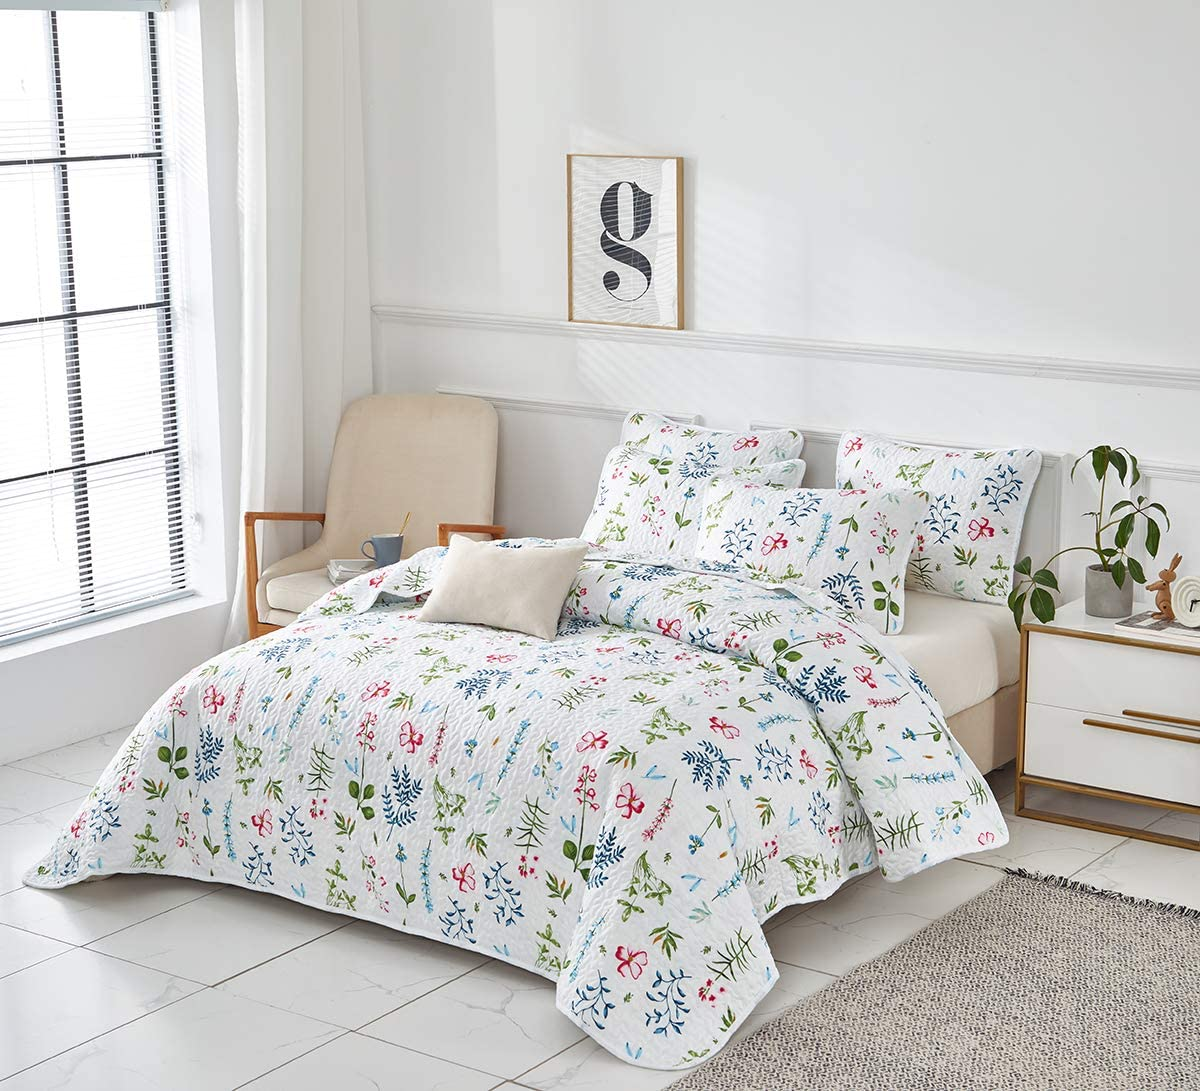 1 Quilt+ 2 Shams Uozzi Bedding 3 Piece Reversible Quilt Set Queen Size 92x90 Soft Microfiber Lightweight Coverlet Bedspread Summer Comforter Set Bed Cover Blanket for All Season Colorful Dots